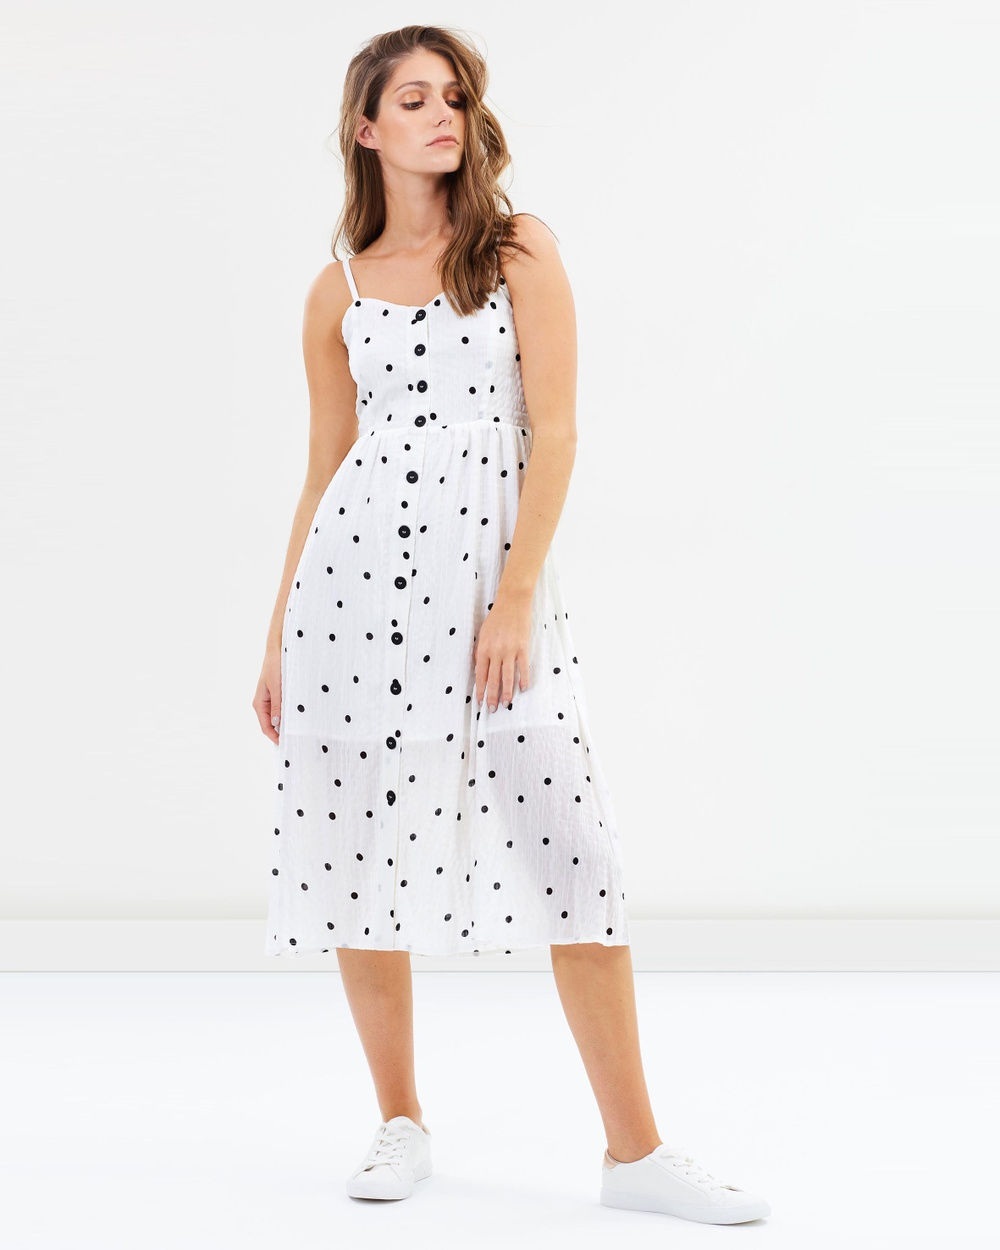 Sass Connect the Dots Derby Day Midi Dress